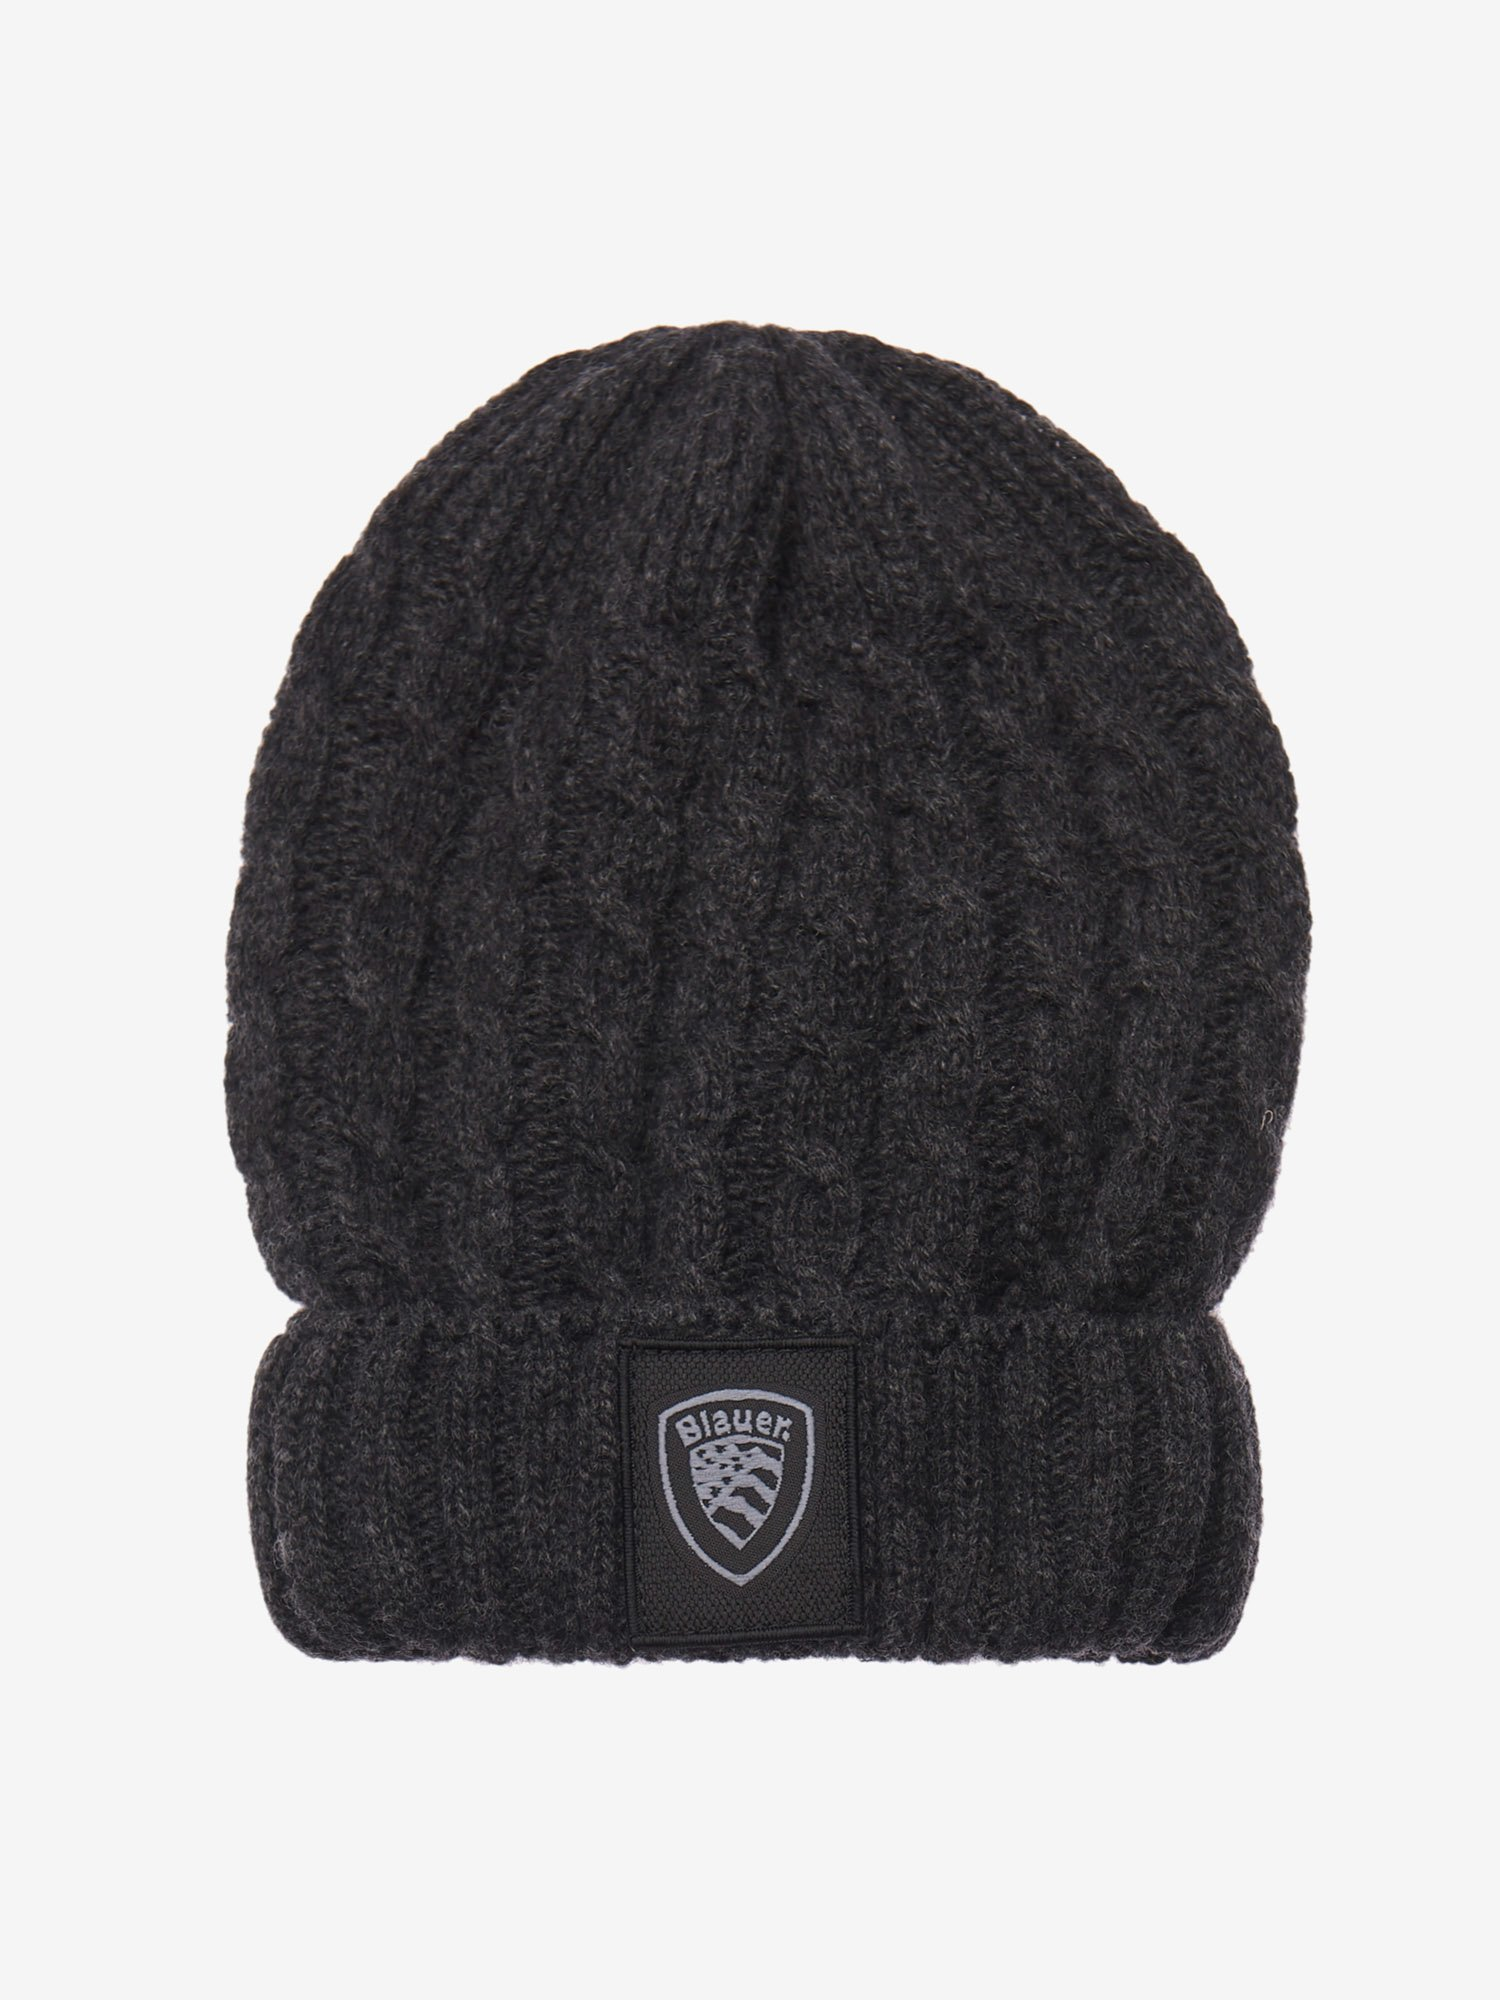 CABLE KNITTED BEANIE - Blauer